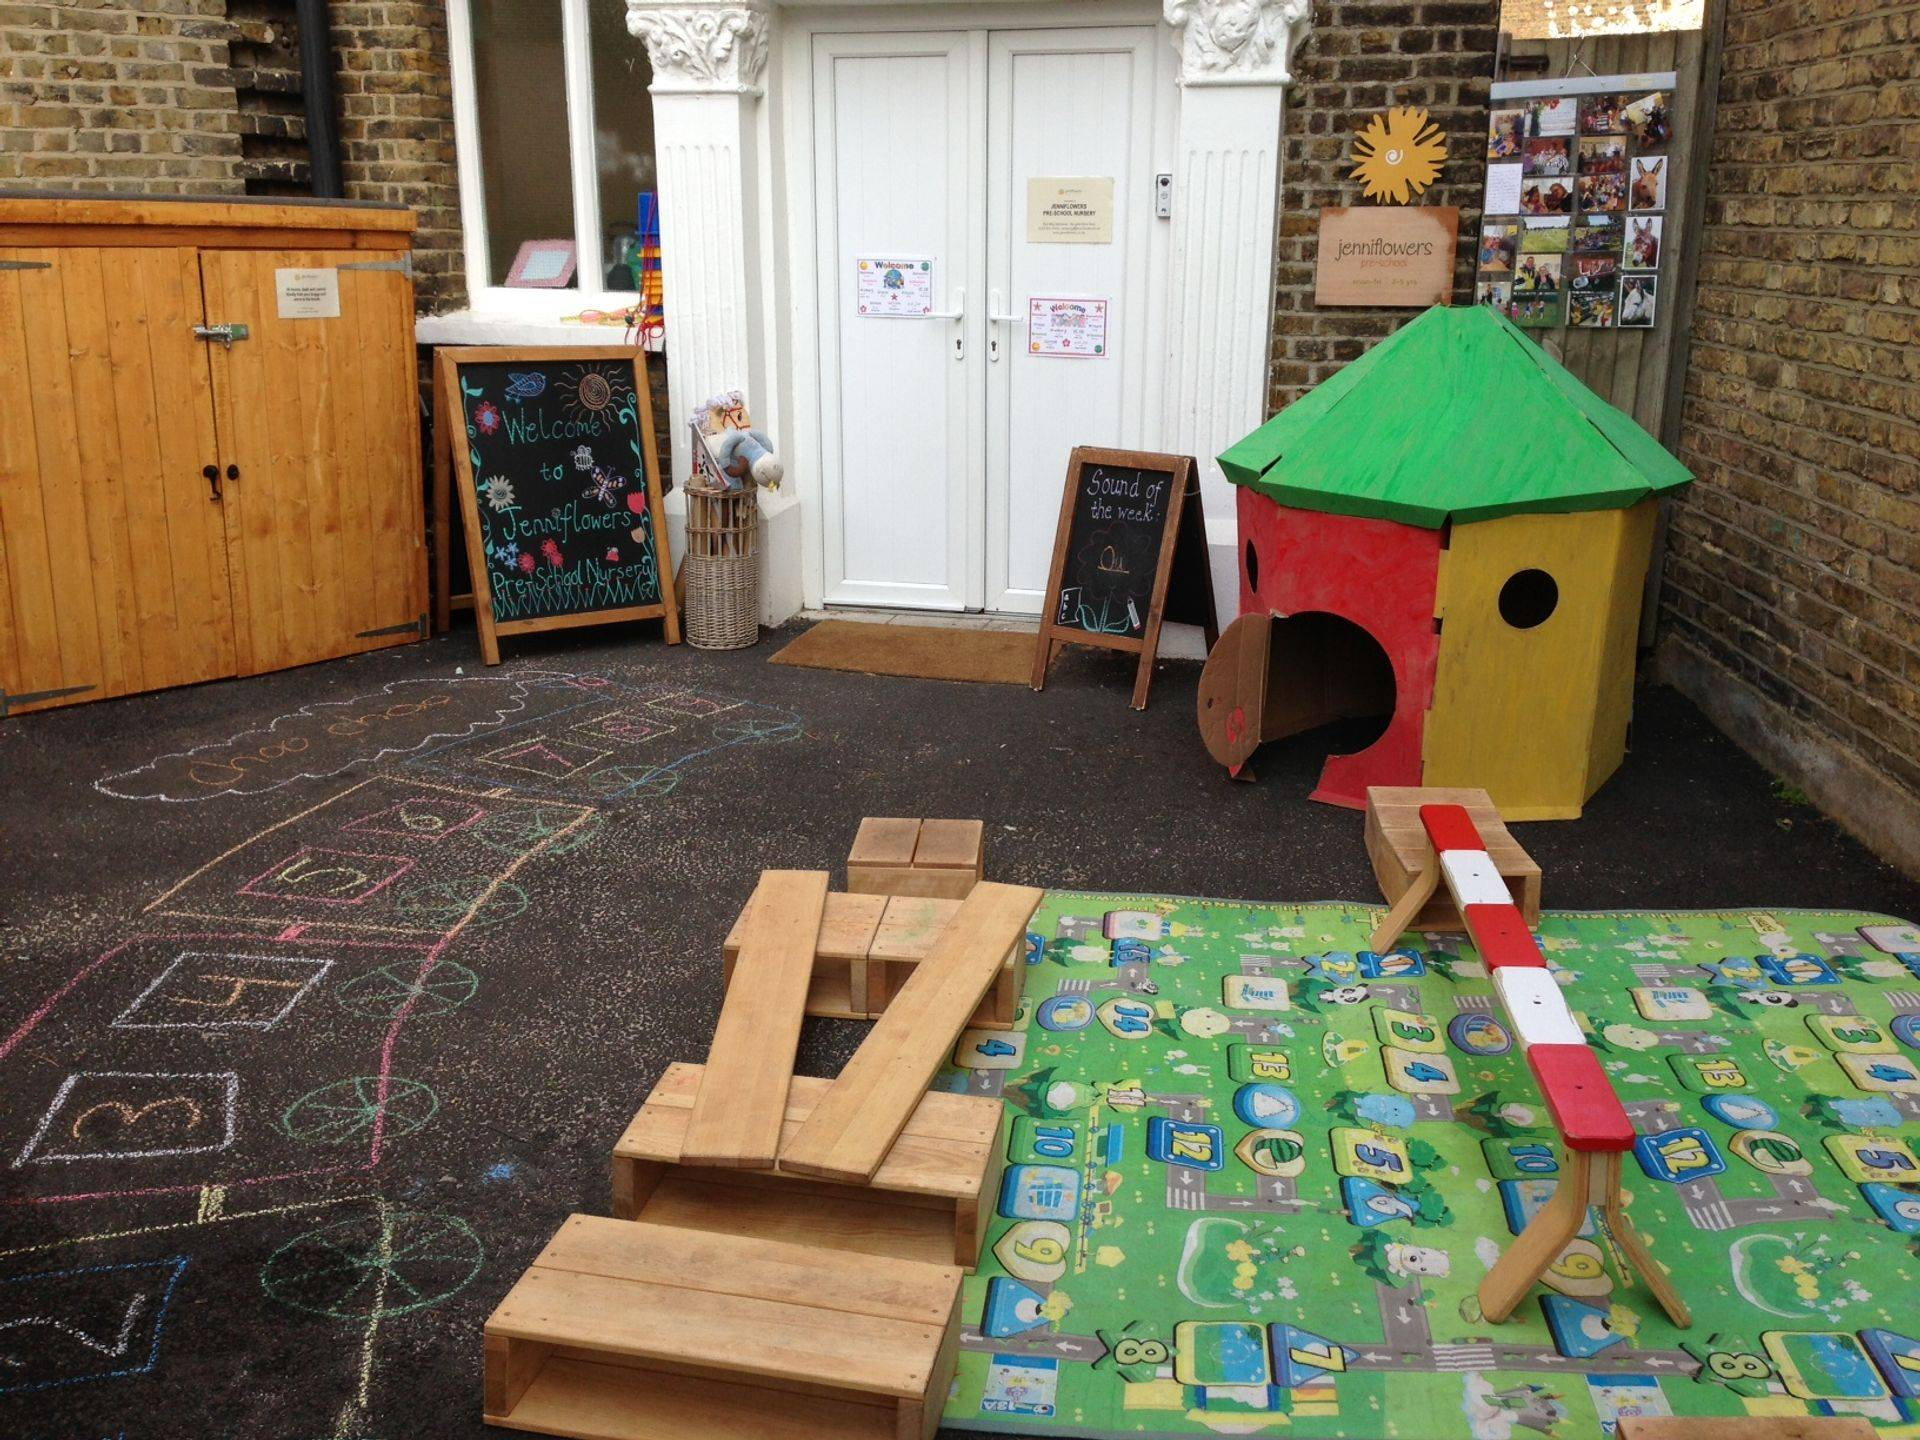 We love the wonder of cardboard, large wooden blocks and beams for balancing, and outdoor chalking